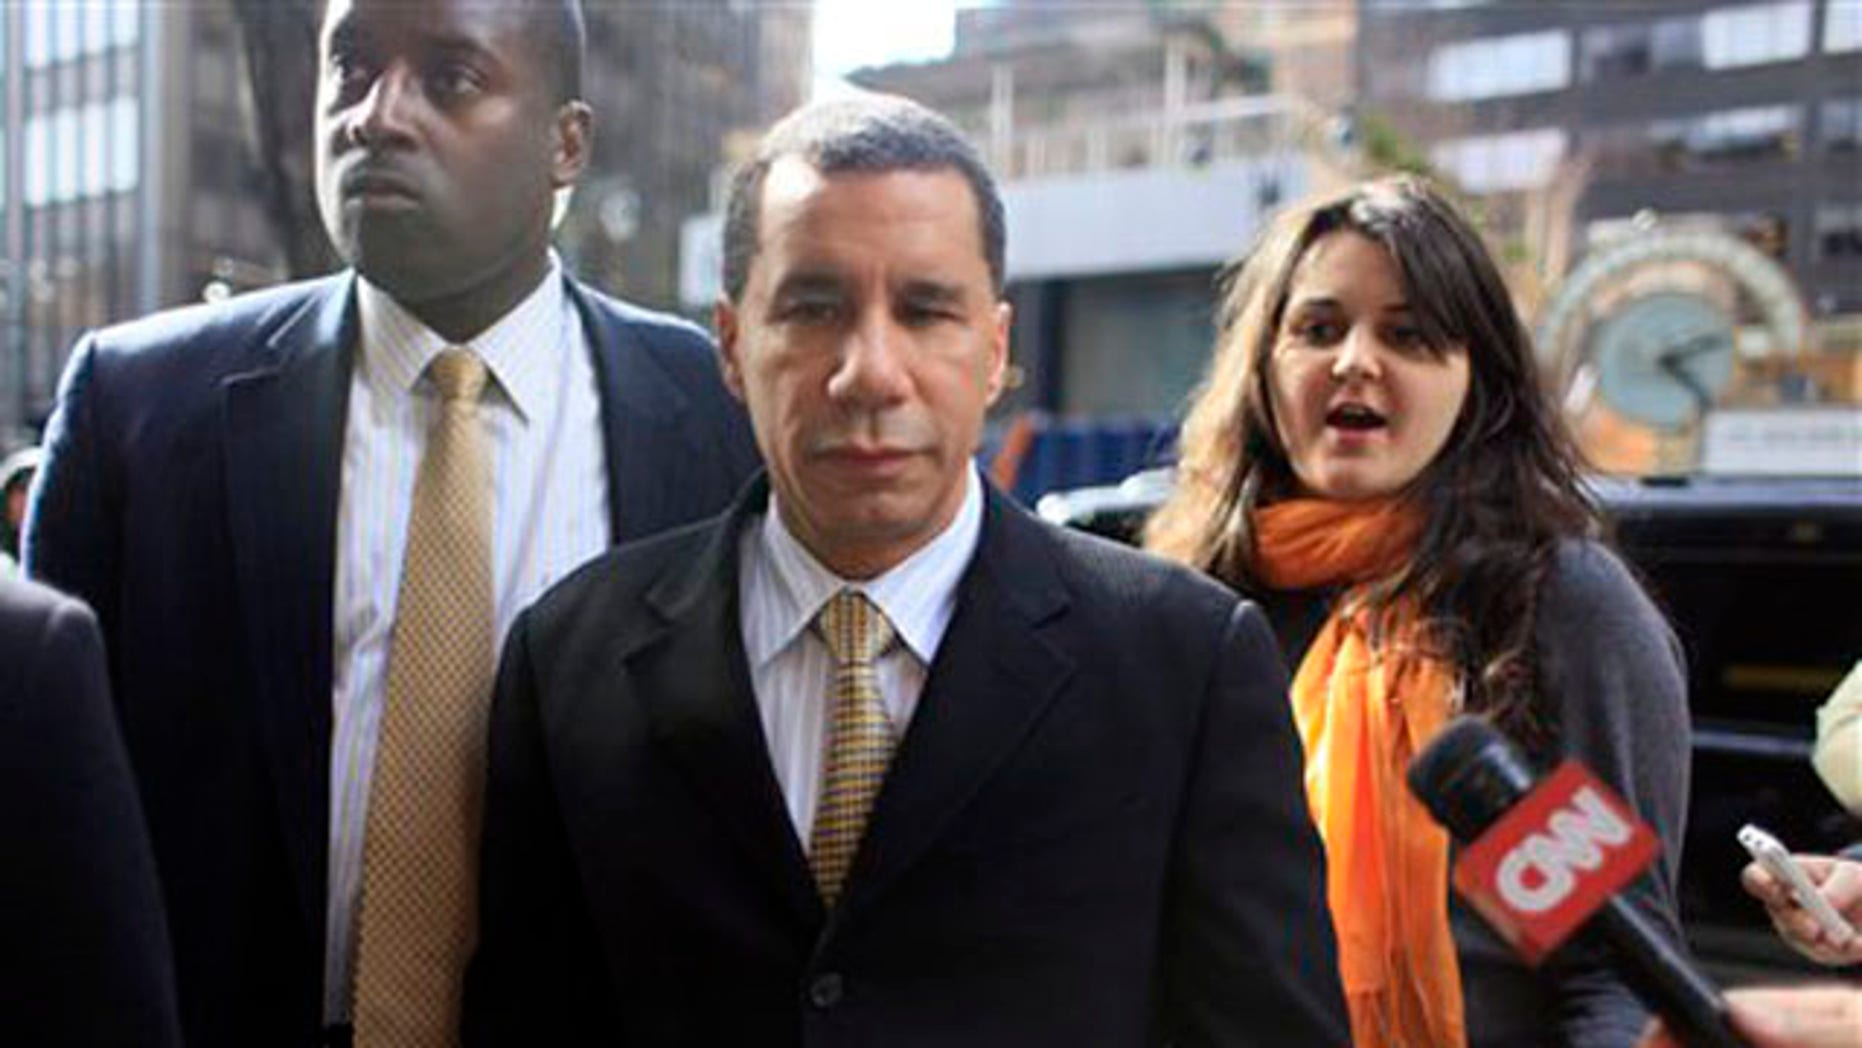 March 5, 2010: New York Gov. David Paterson, center, arrives at his midtown office (AP).